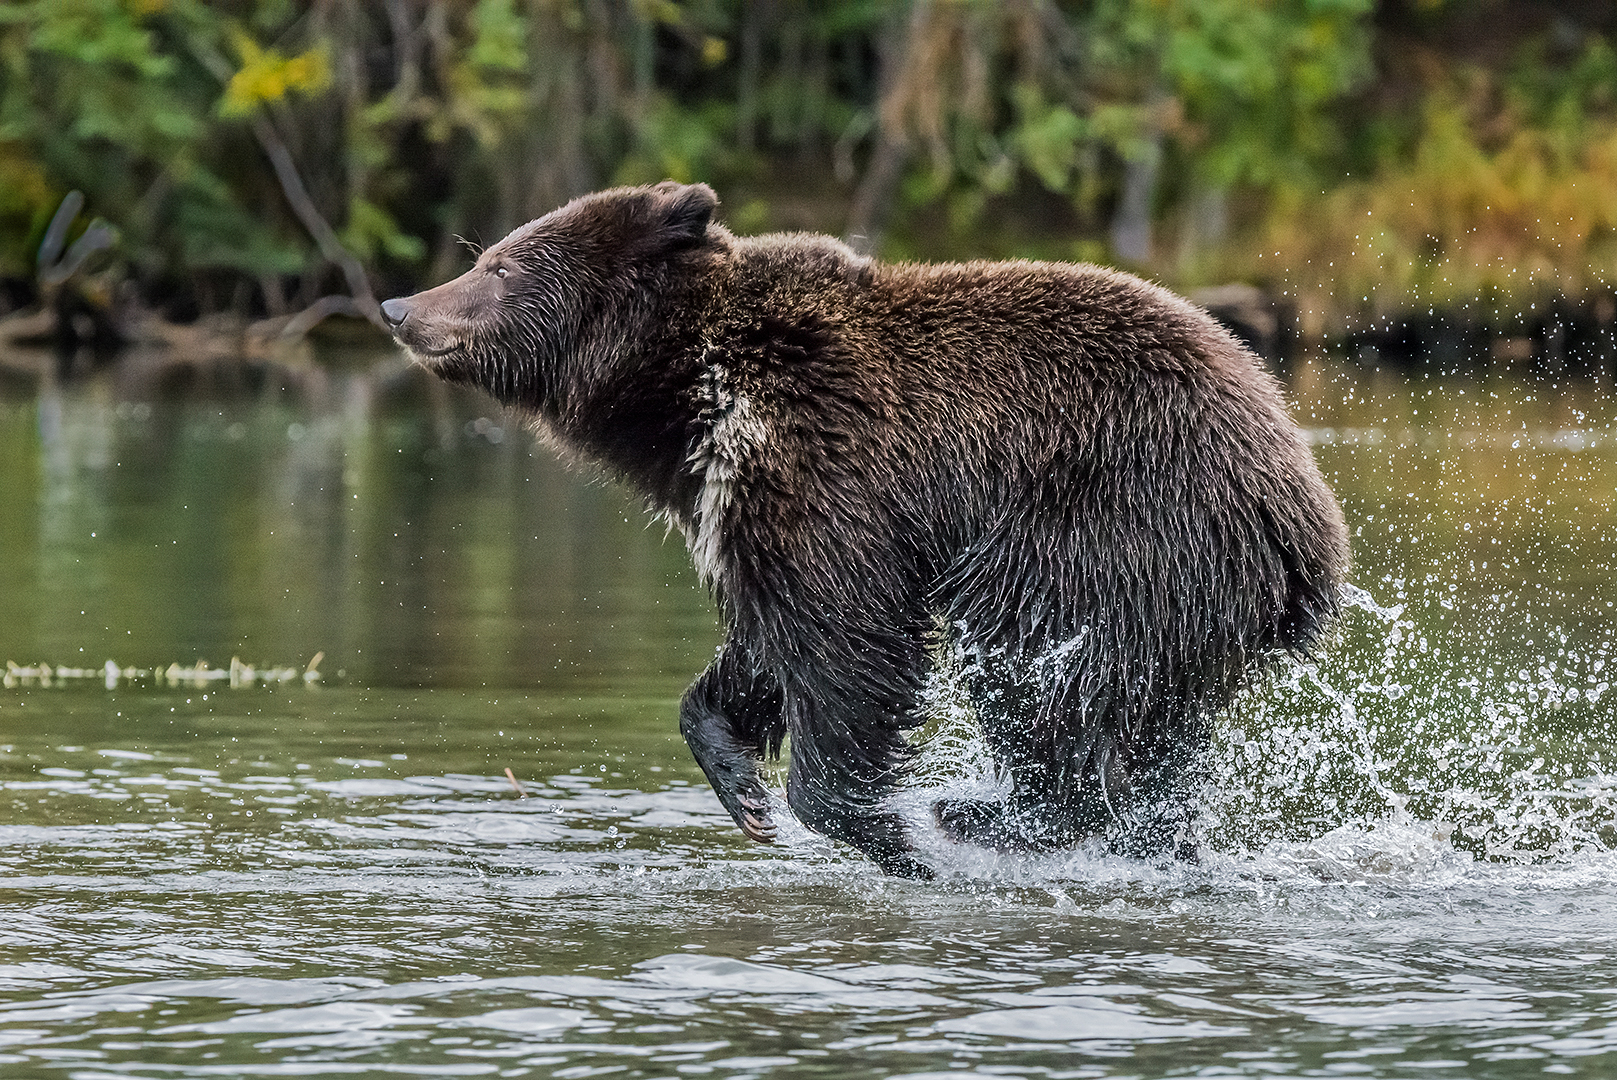 Grizzly bear cub in panic